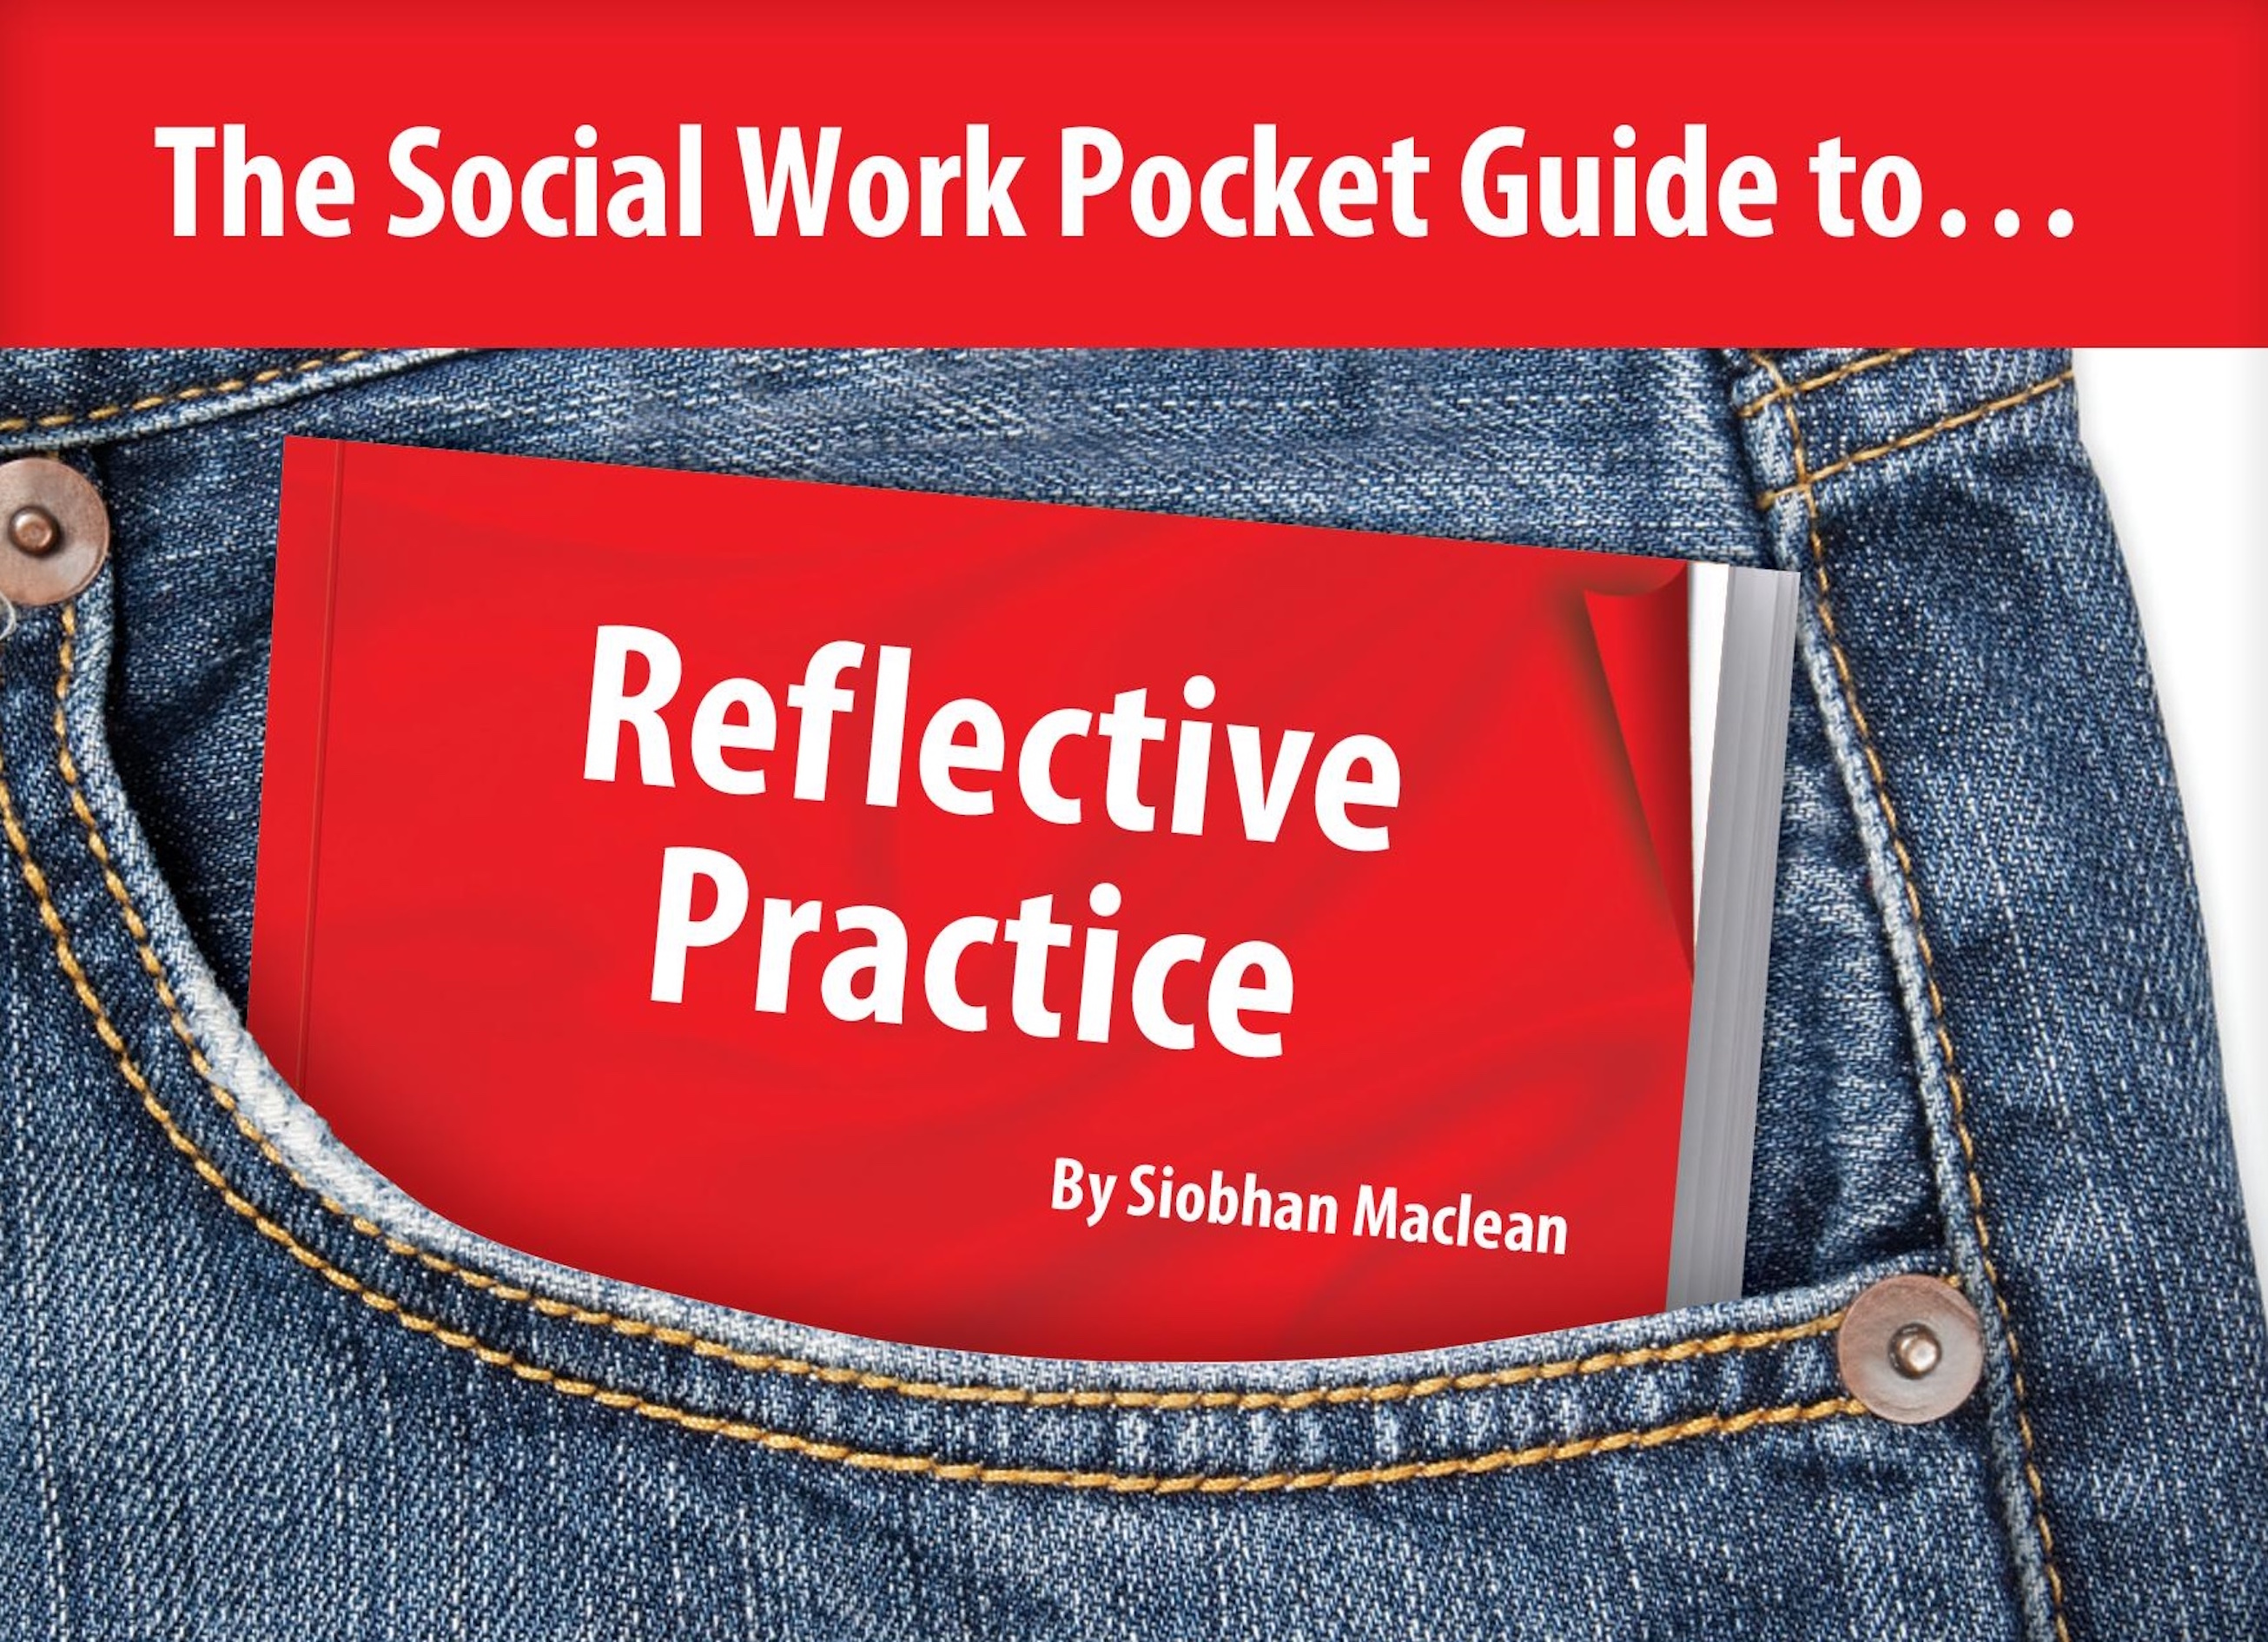 The Social Work Pocket Guide to..:Reflective Practice